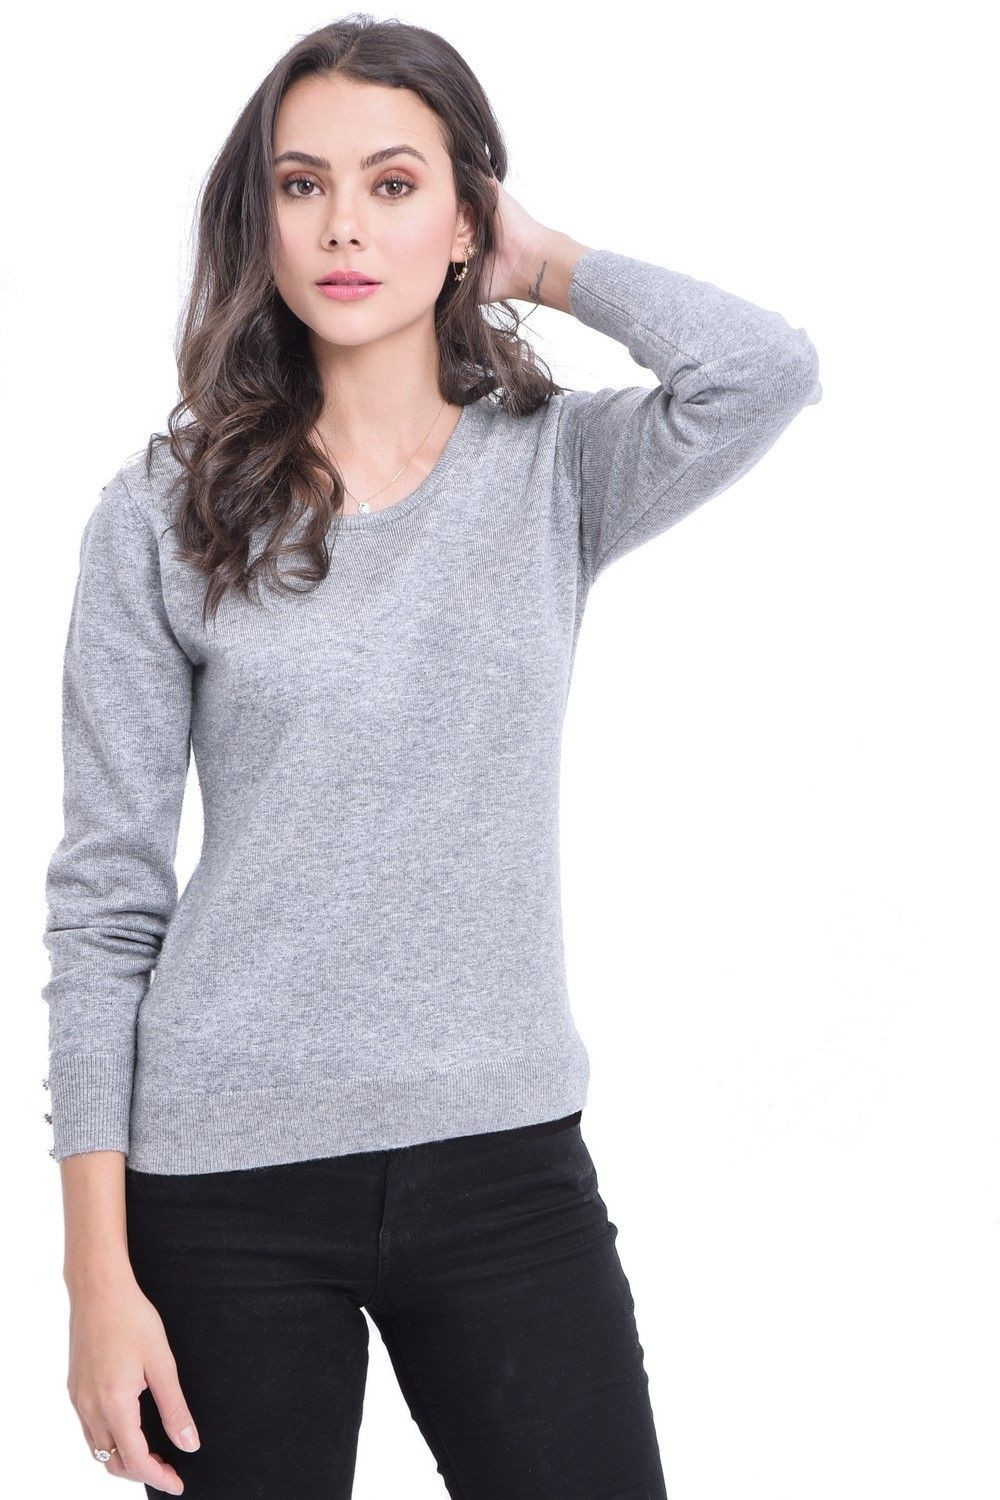 C&JO Round Neck Sweater with Buttoned Sleeves in Light Grey